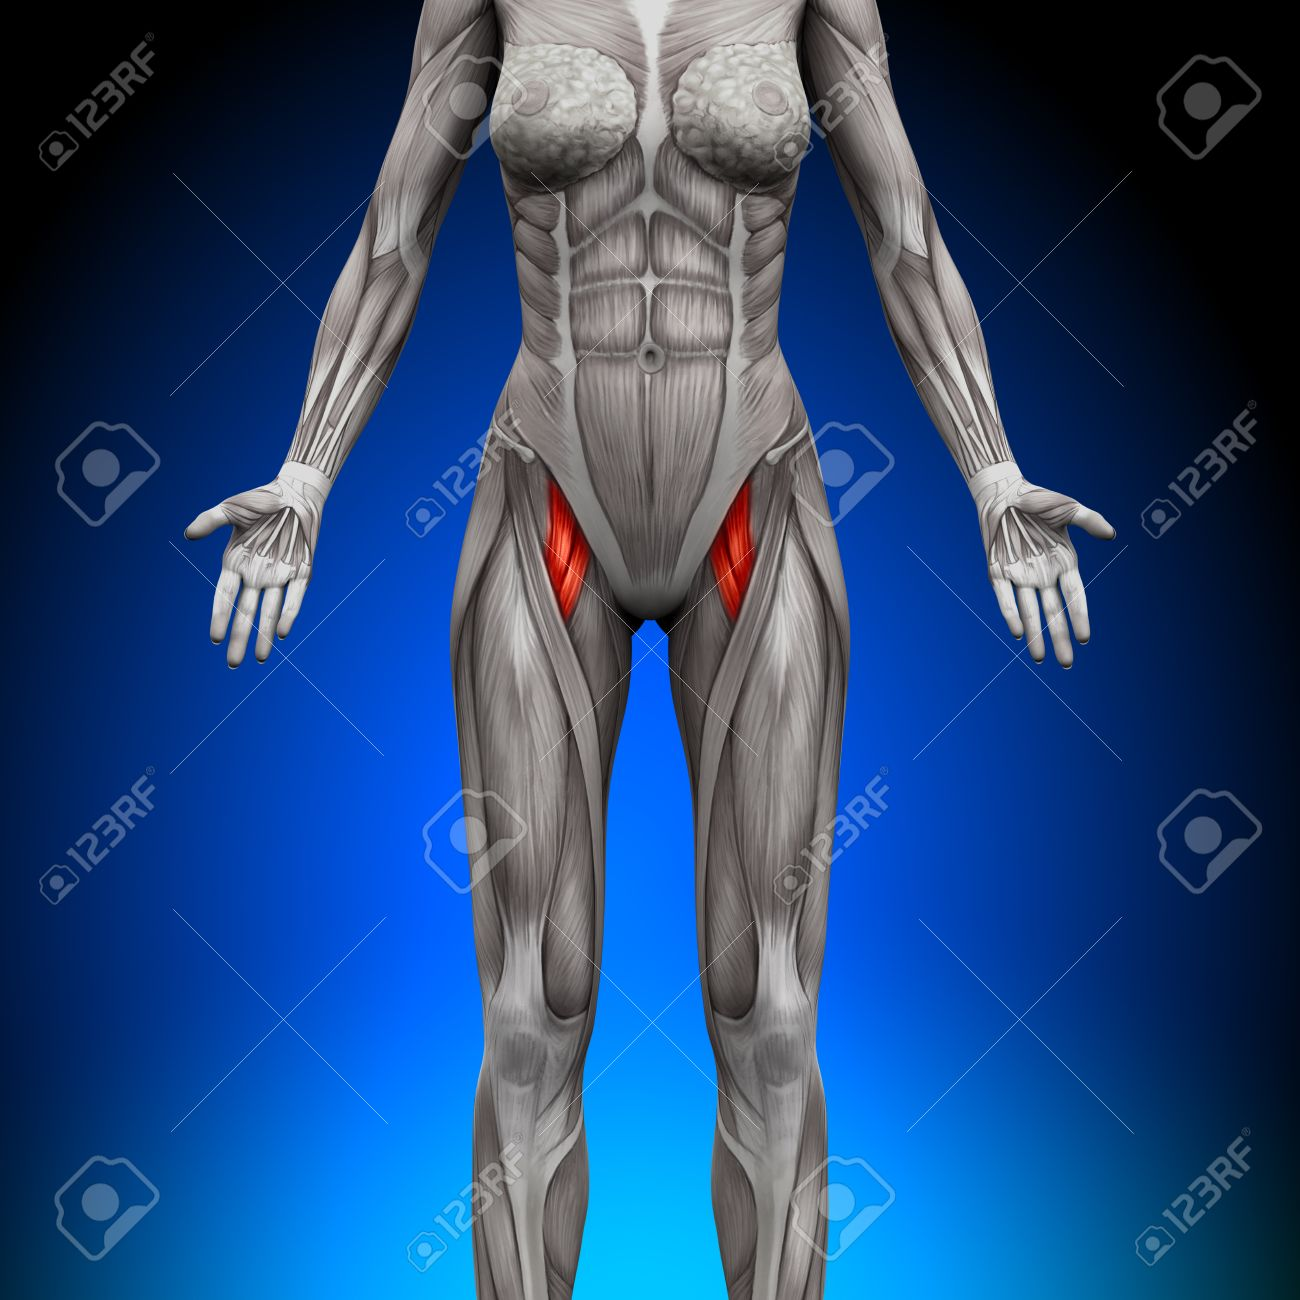 Abs - Female Anatomy Muscles Stock Photo, Picture And Royalty Free ...